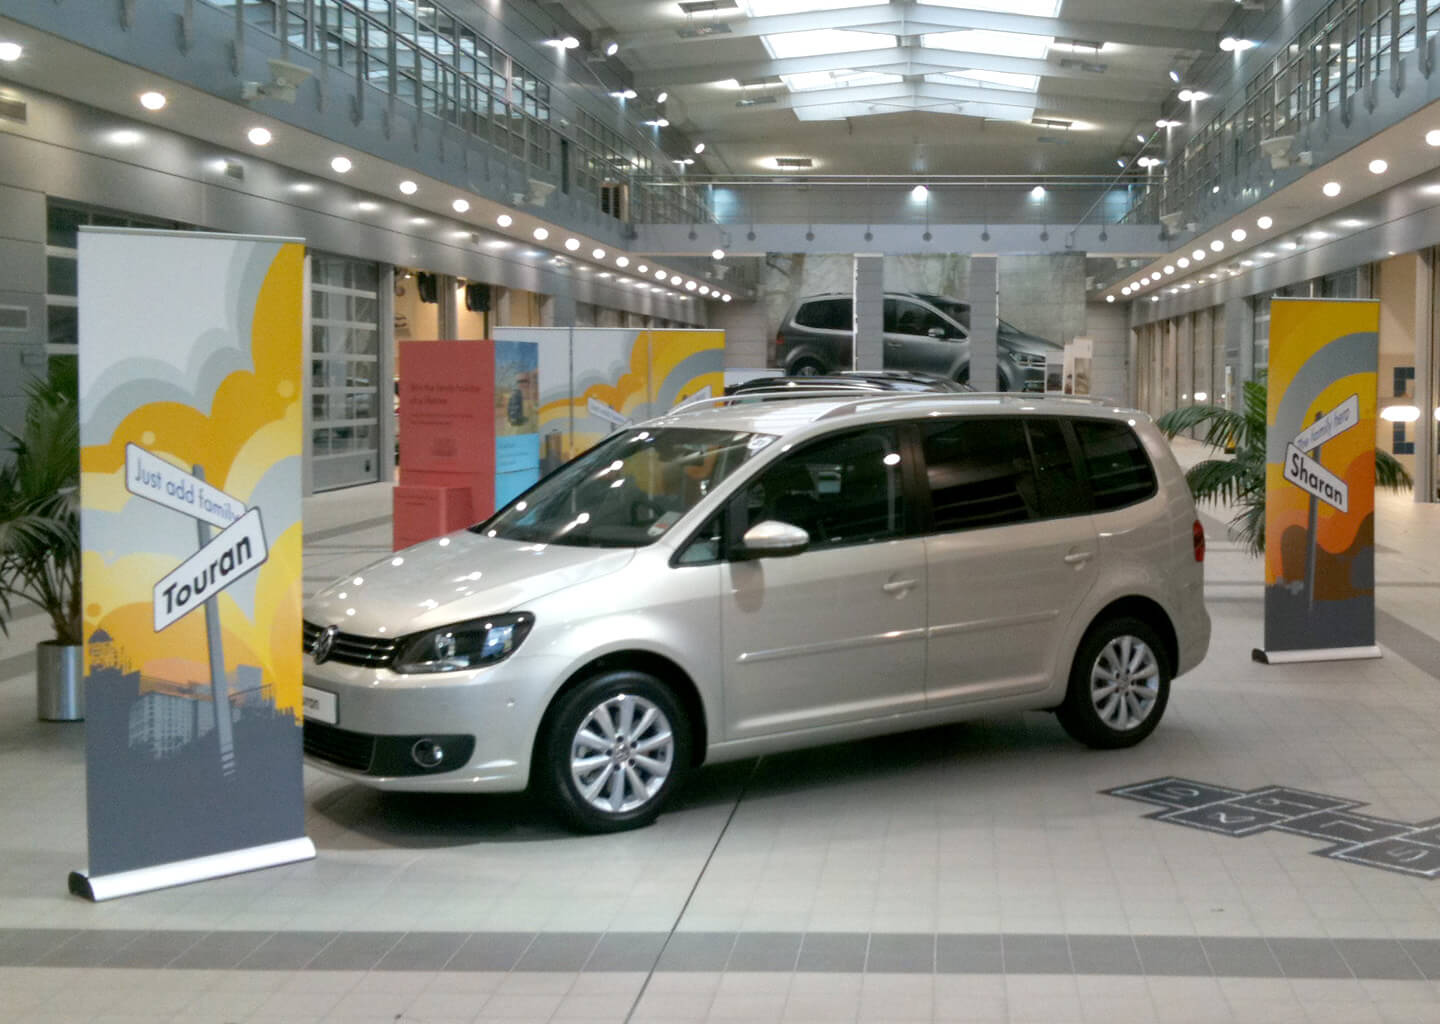 Creative event design for a Volkswagen launch